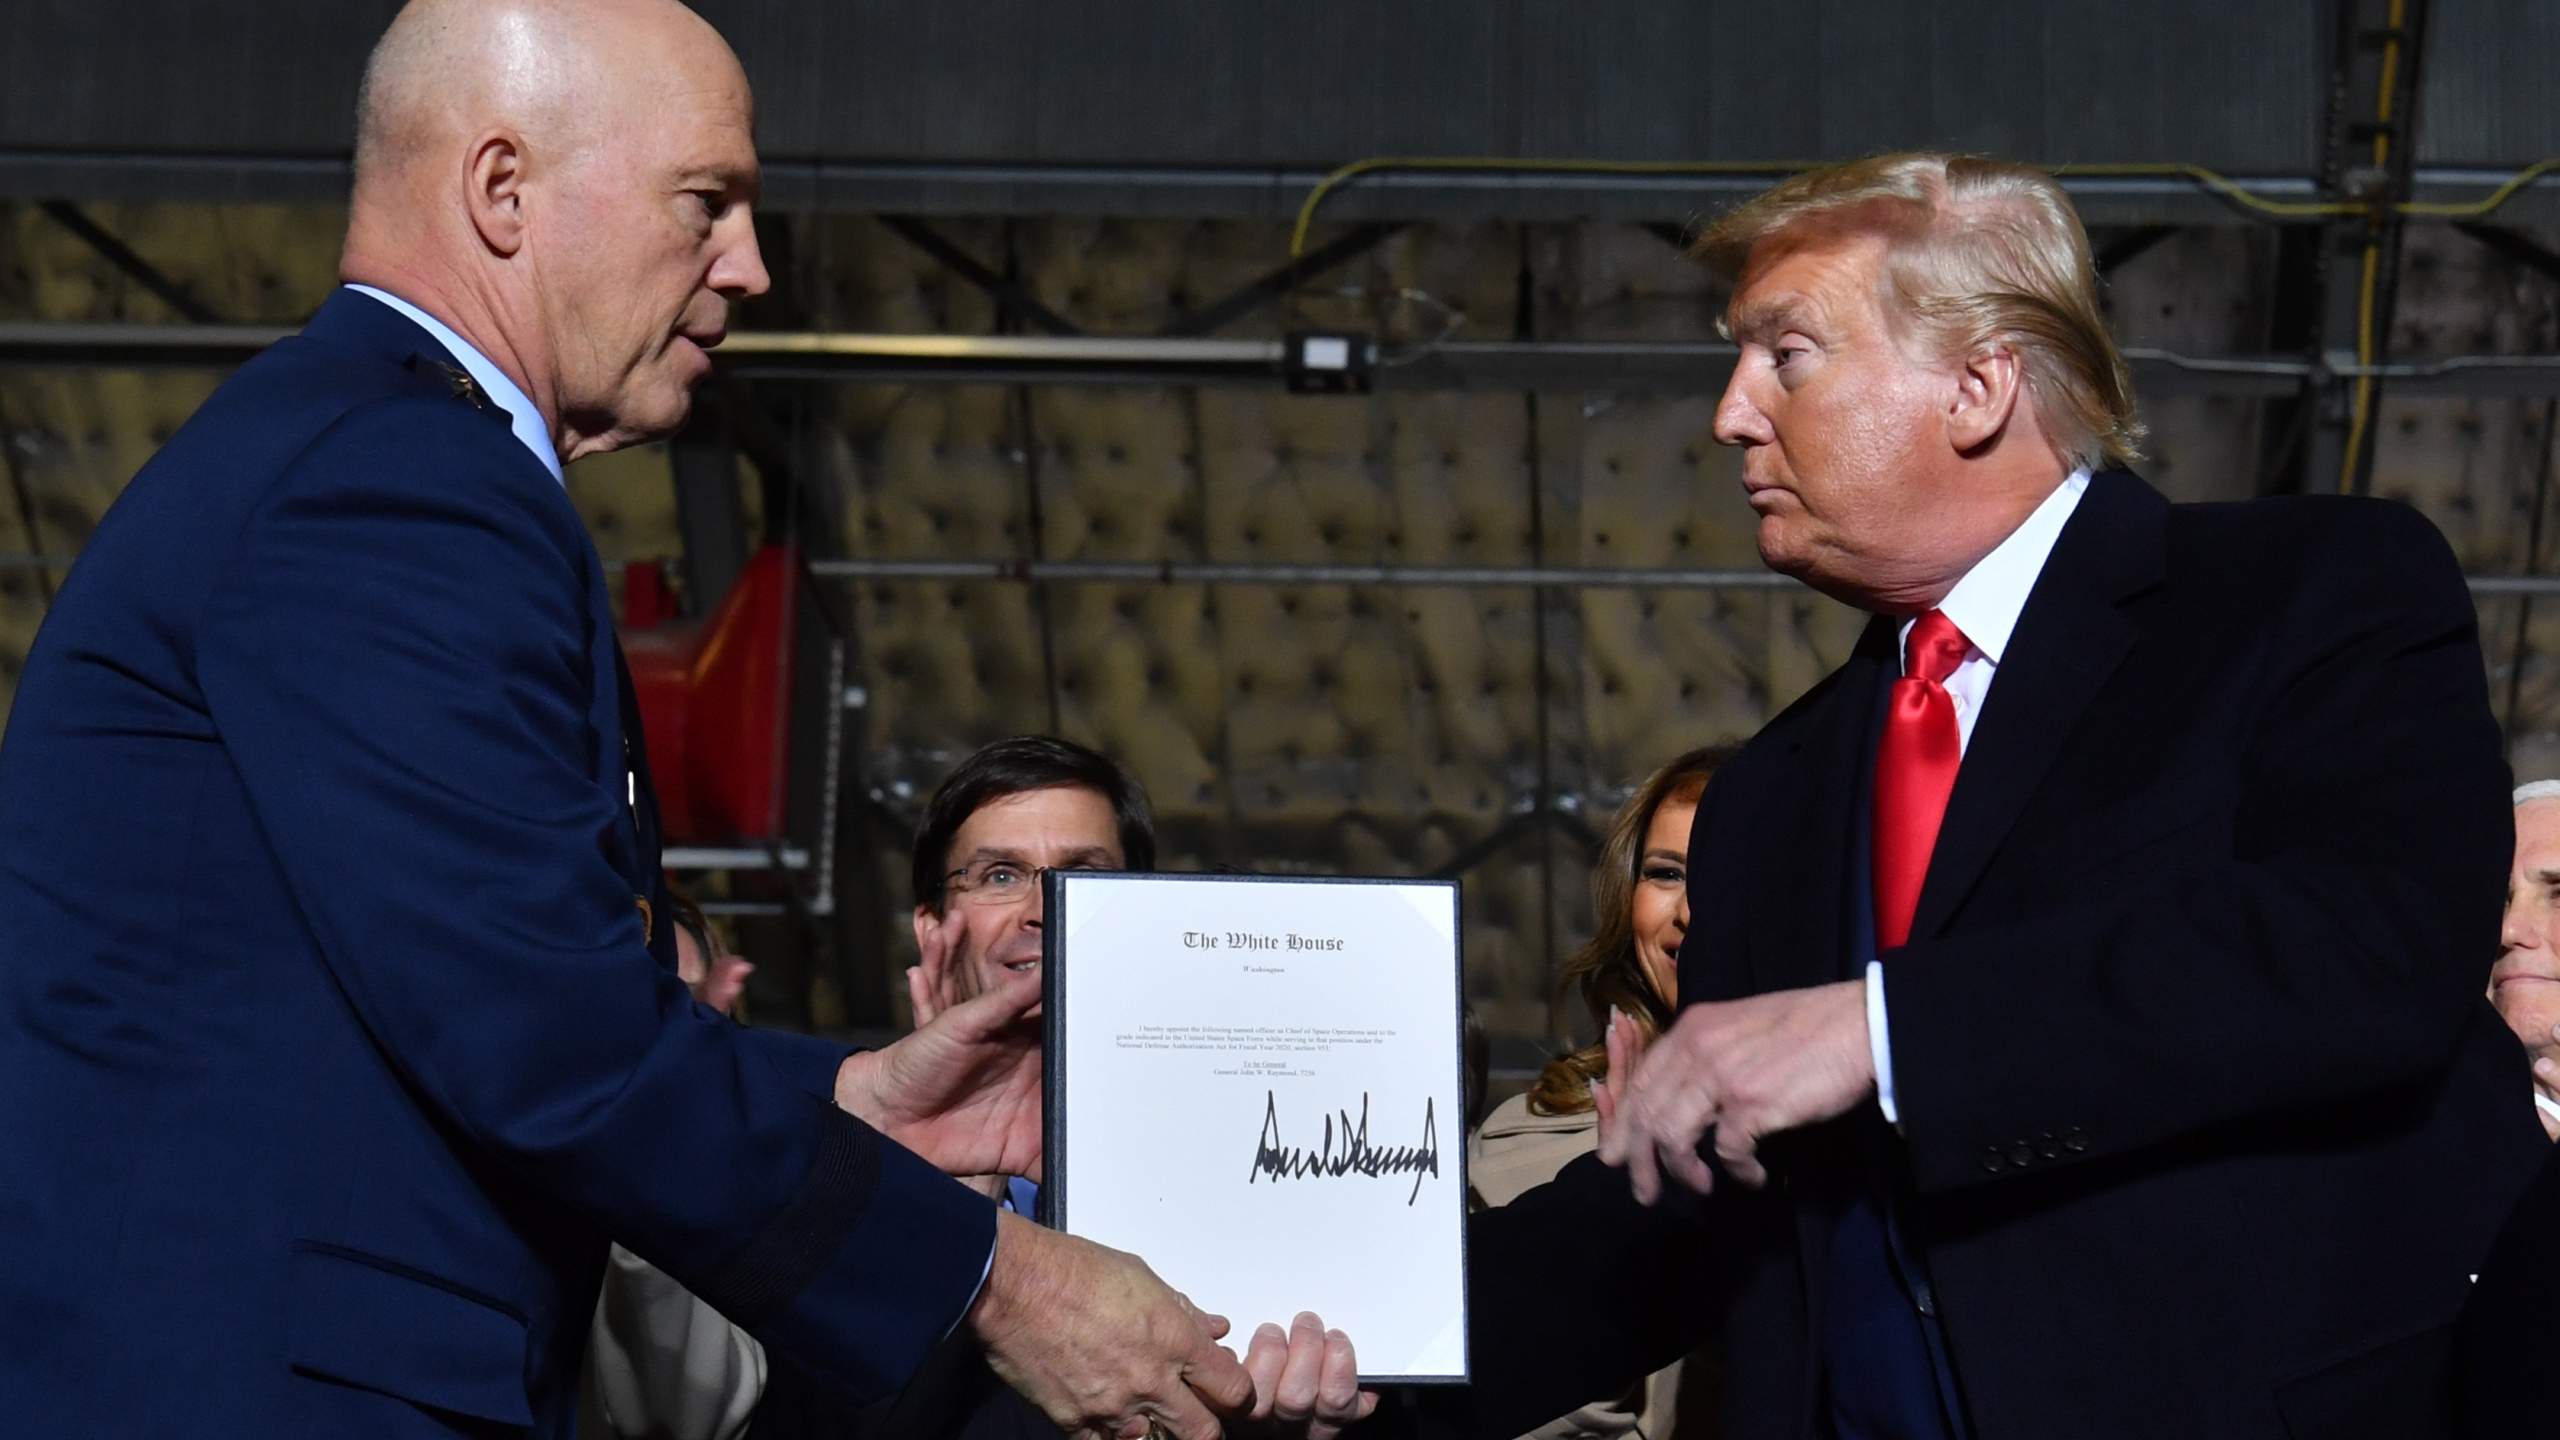 President Donald Trump, right, hands General John W. Raymond a document after signing the National Defense Authorization Act at Joint Base Andrews, Maryland, on Dec. 20, 2019. (Credit: Nicholas Kamm / AFP / Getty Images)